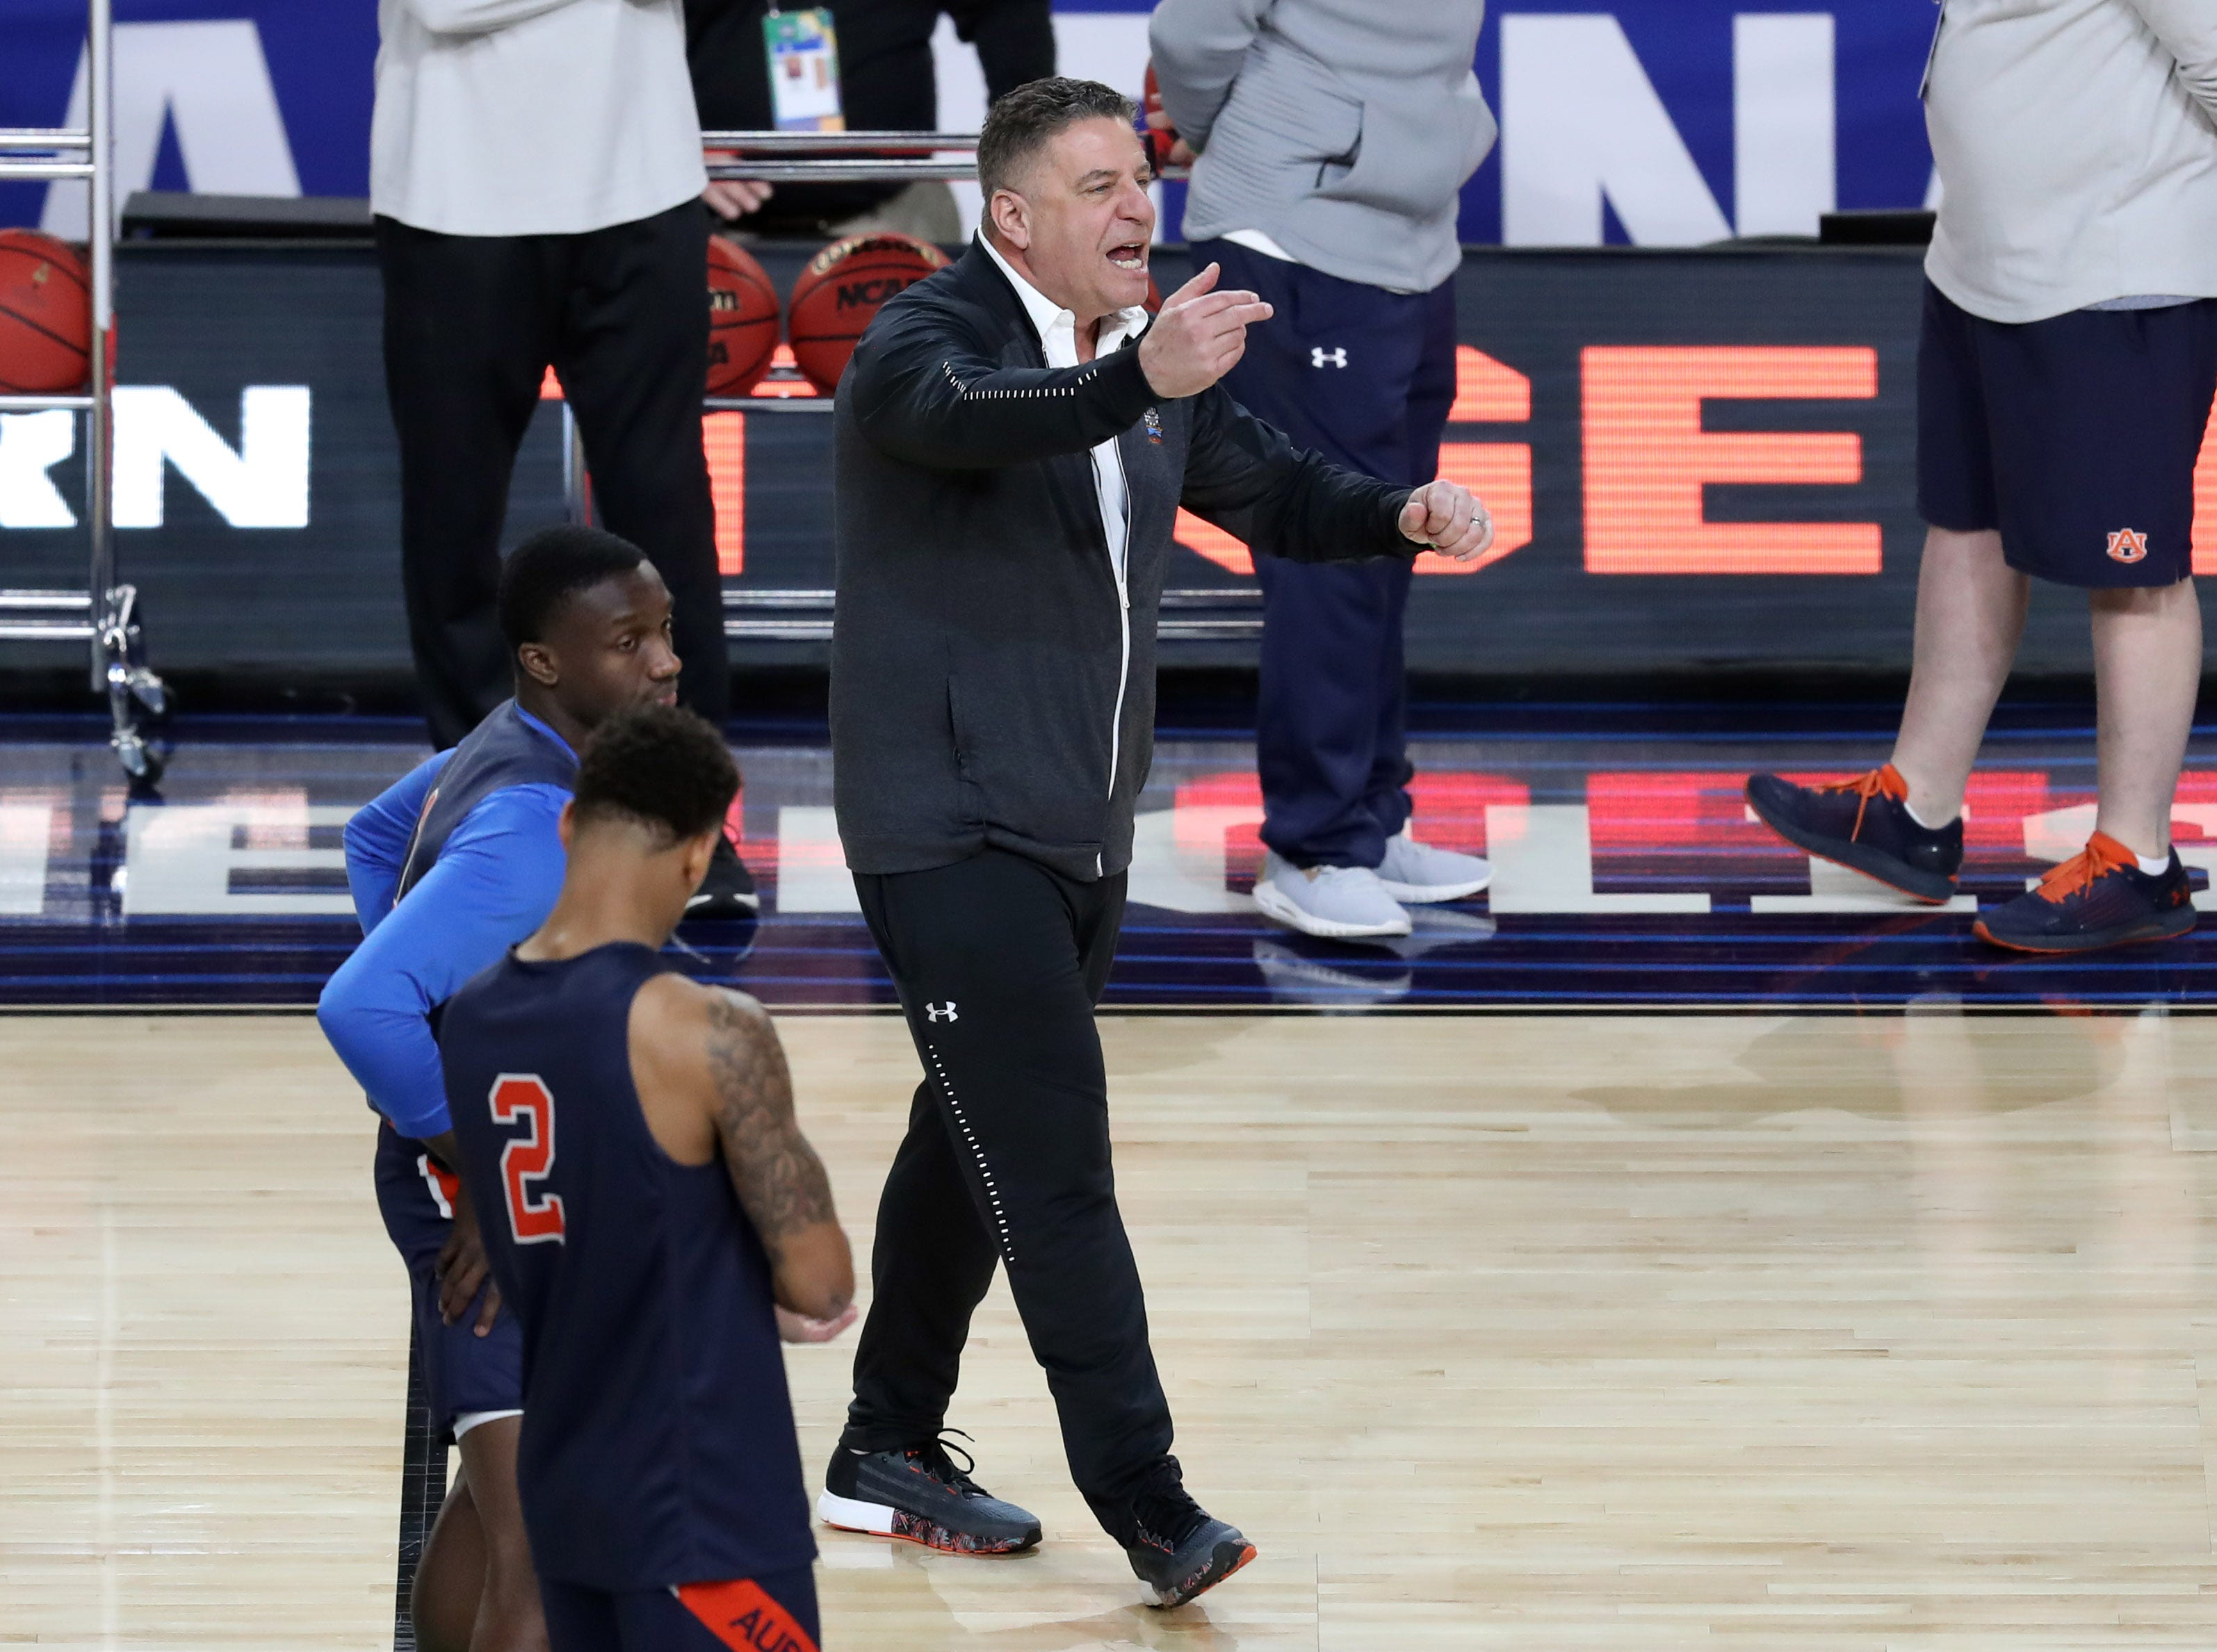 Apr 5, 2019; Minneapolis, MN, USA; Auburn Tigers head coach Bruce Pearl during practice for the 2019 men's Final Four at US Bank Stadium. Mandatory Credit: Brace Hemmelgarn-USA TODAY Sports